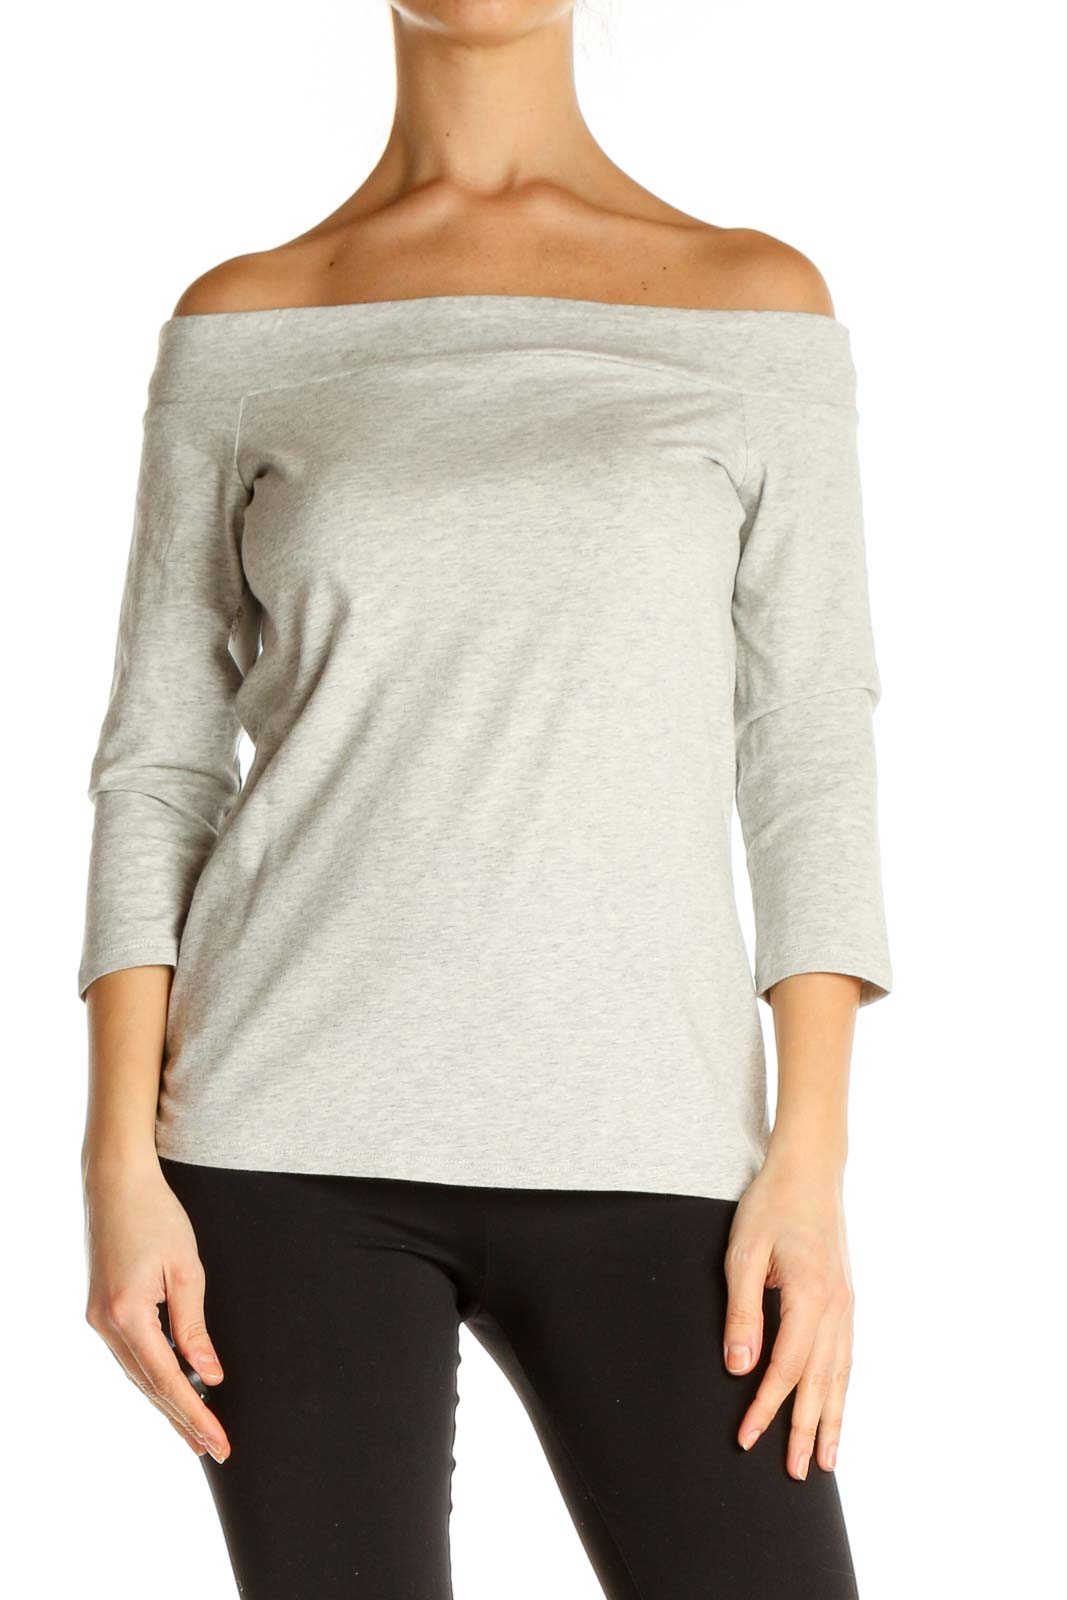 Beige Solid Brunch Sweater Front